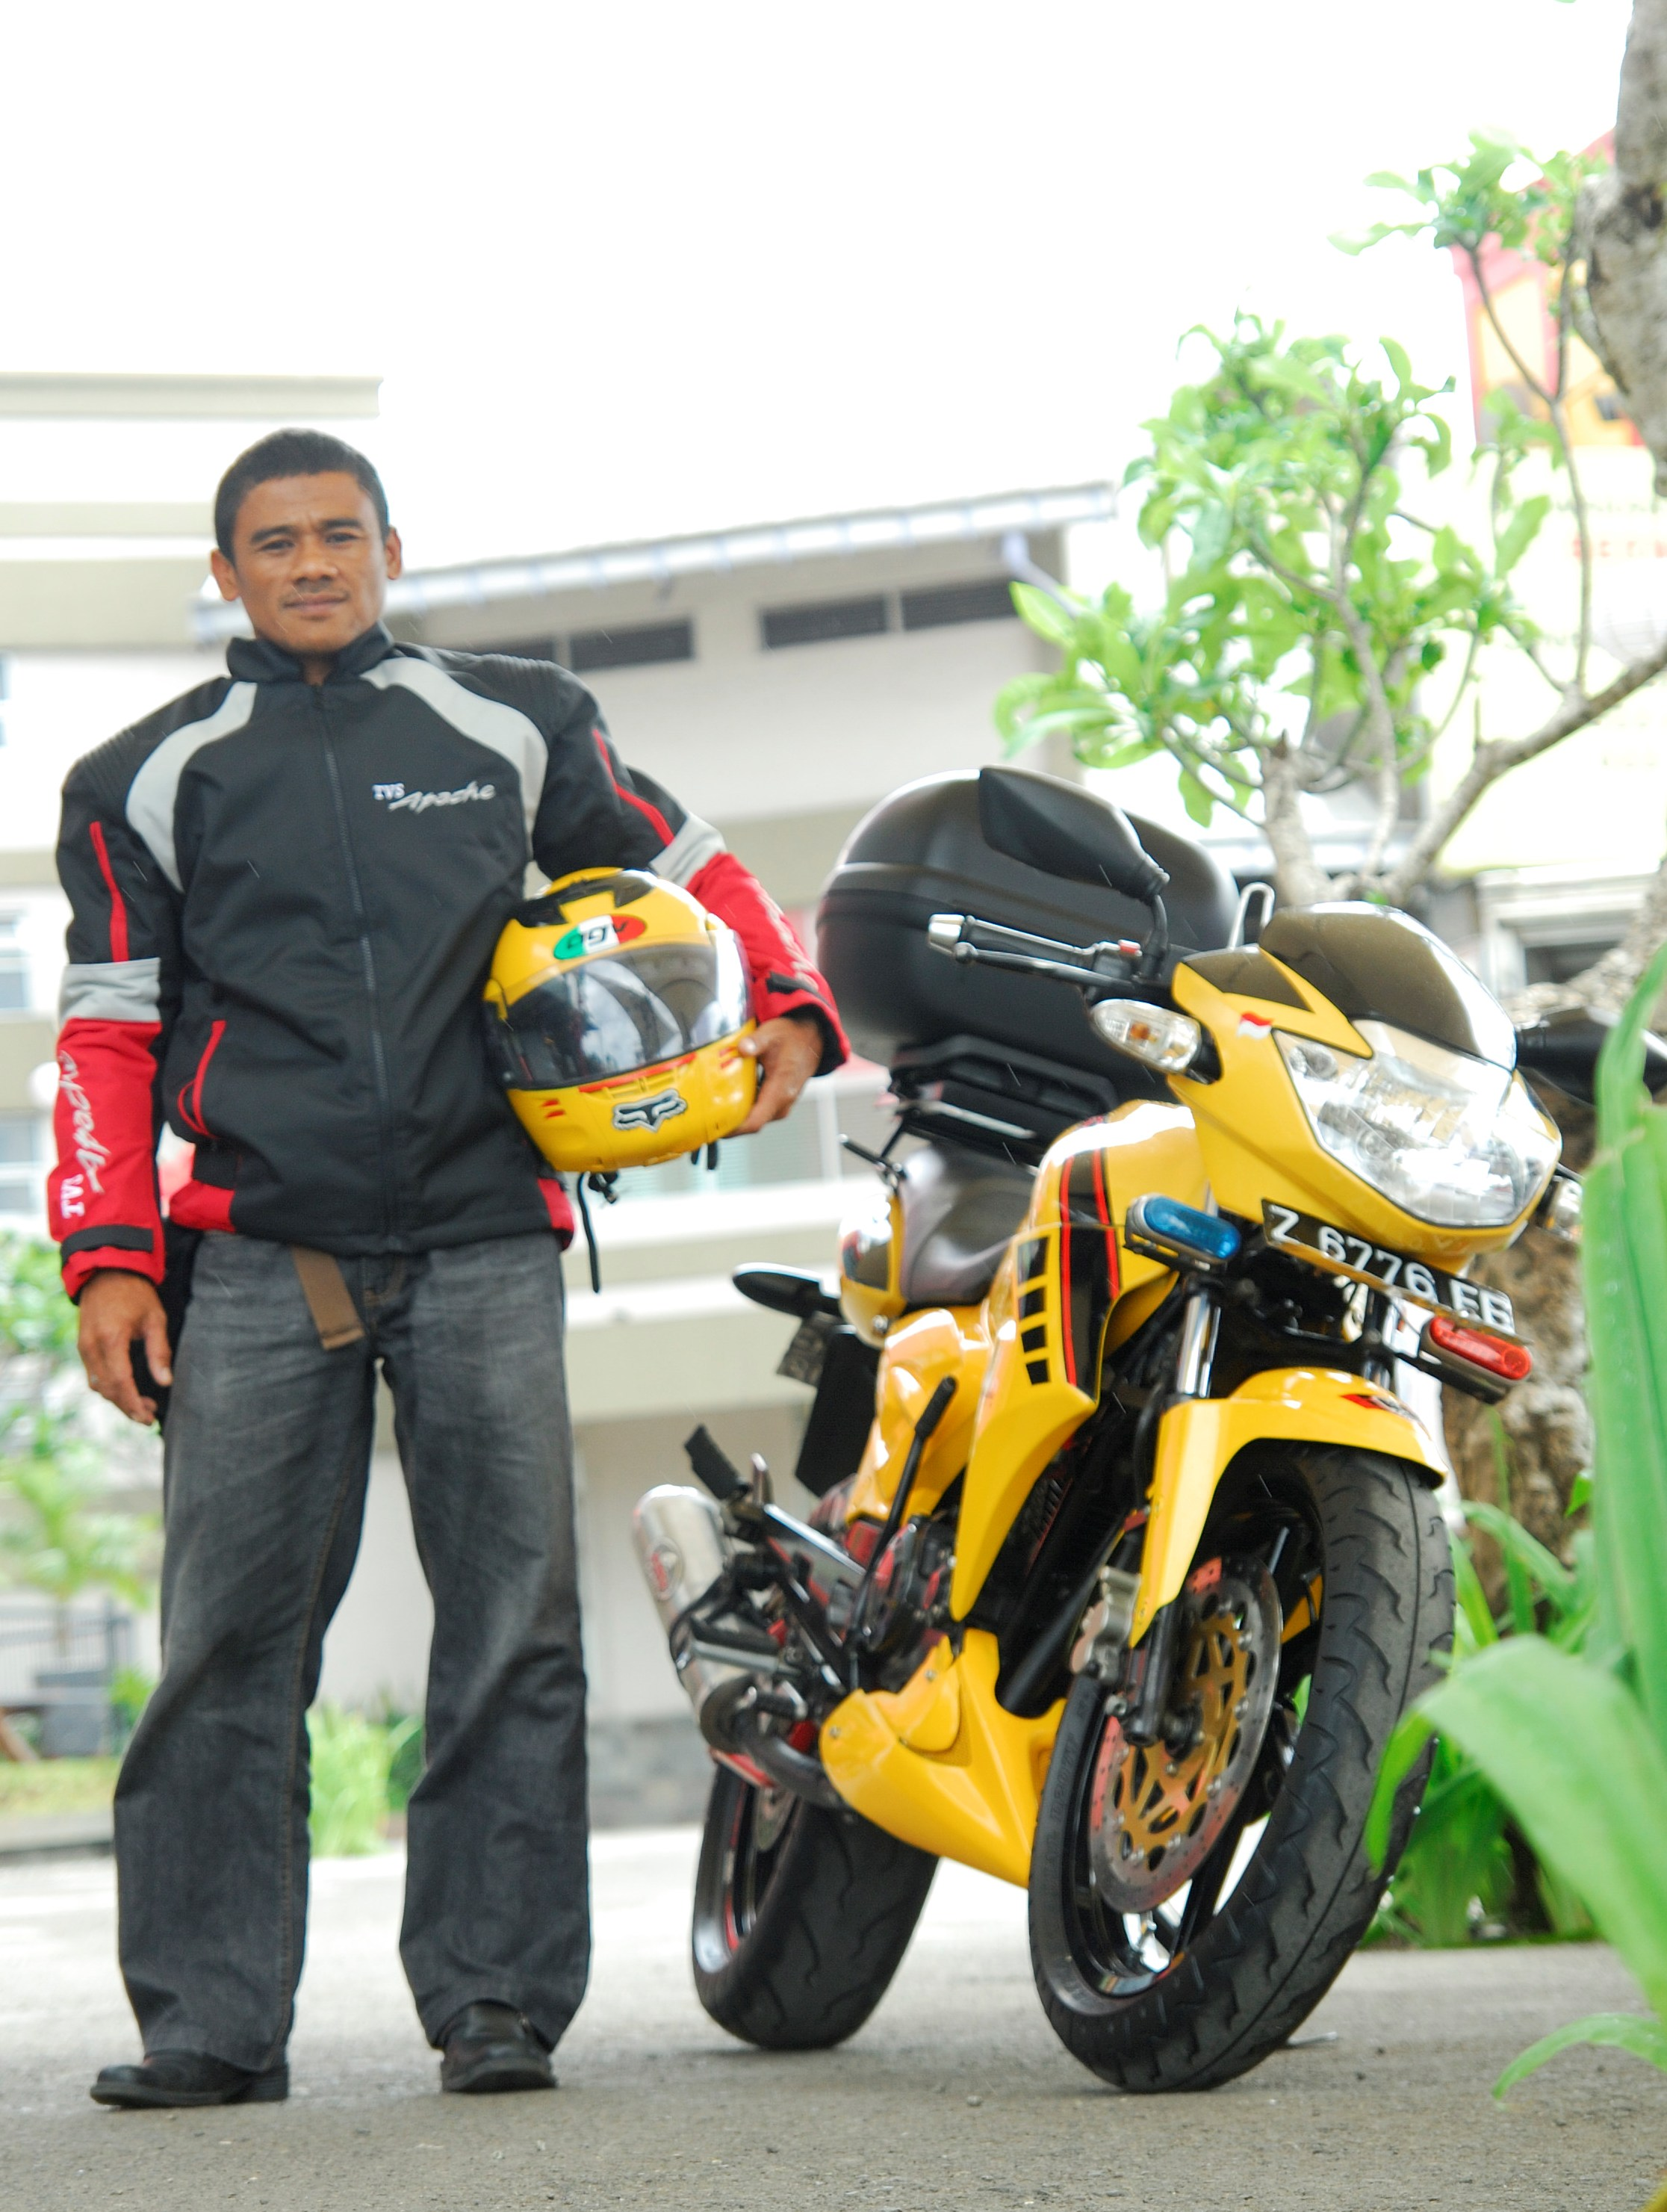 sumber,http://gilamotor.com/2010/12/apache-rtr-160-sport-touring-sang  title=